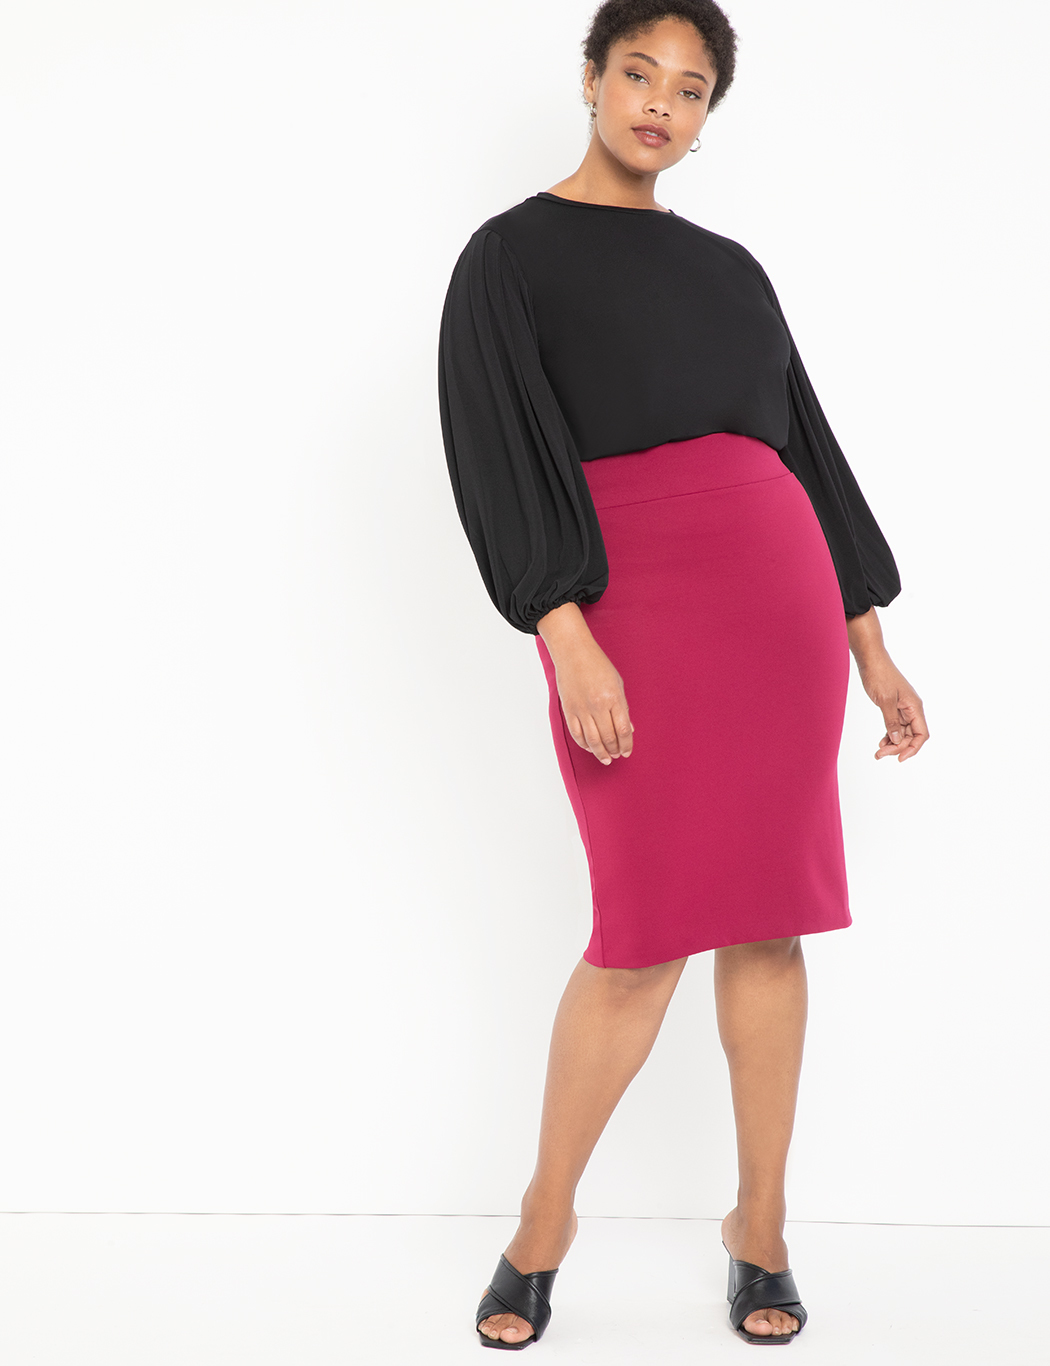 Neoprene Pencil Skirt 12